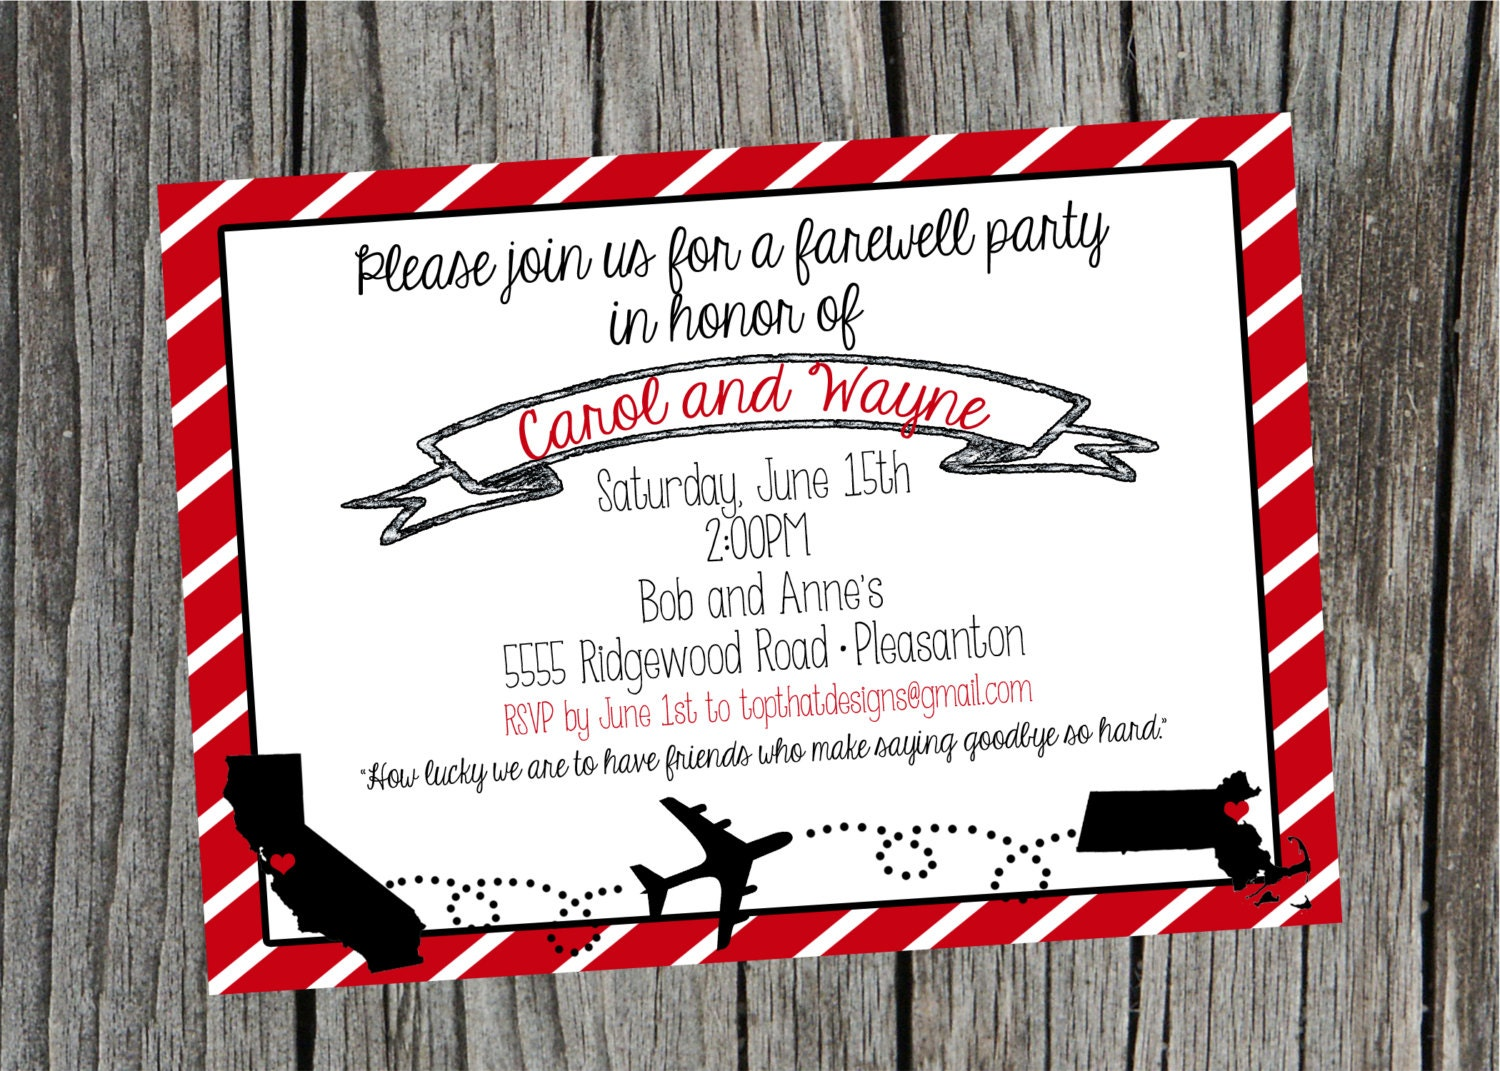 College Going Away Party Invitation Wording is perfect invitation sample